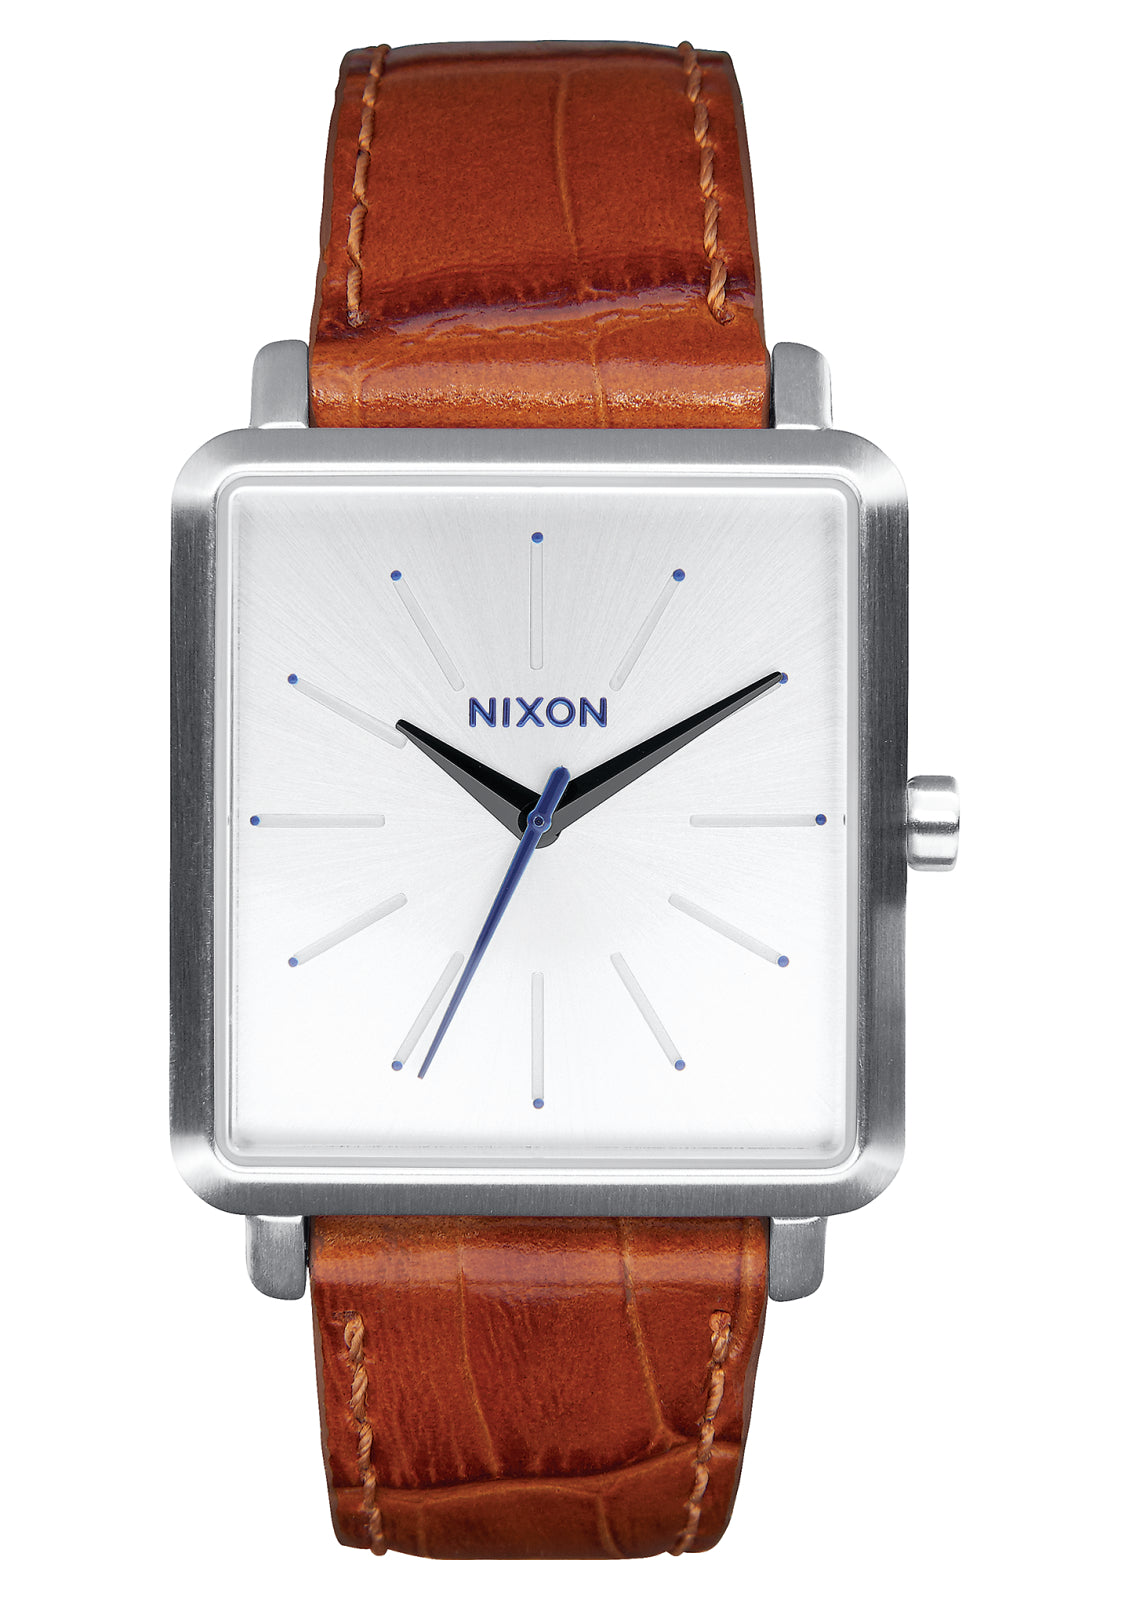 NIXON K SQUARED SILVER/SADDLE GATOR WATCH